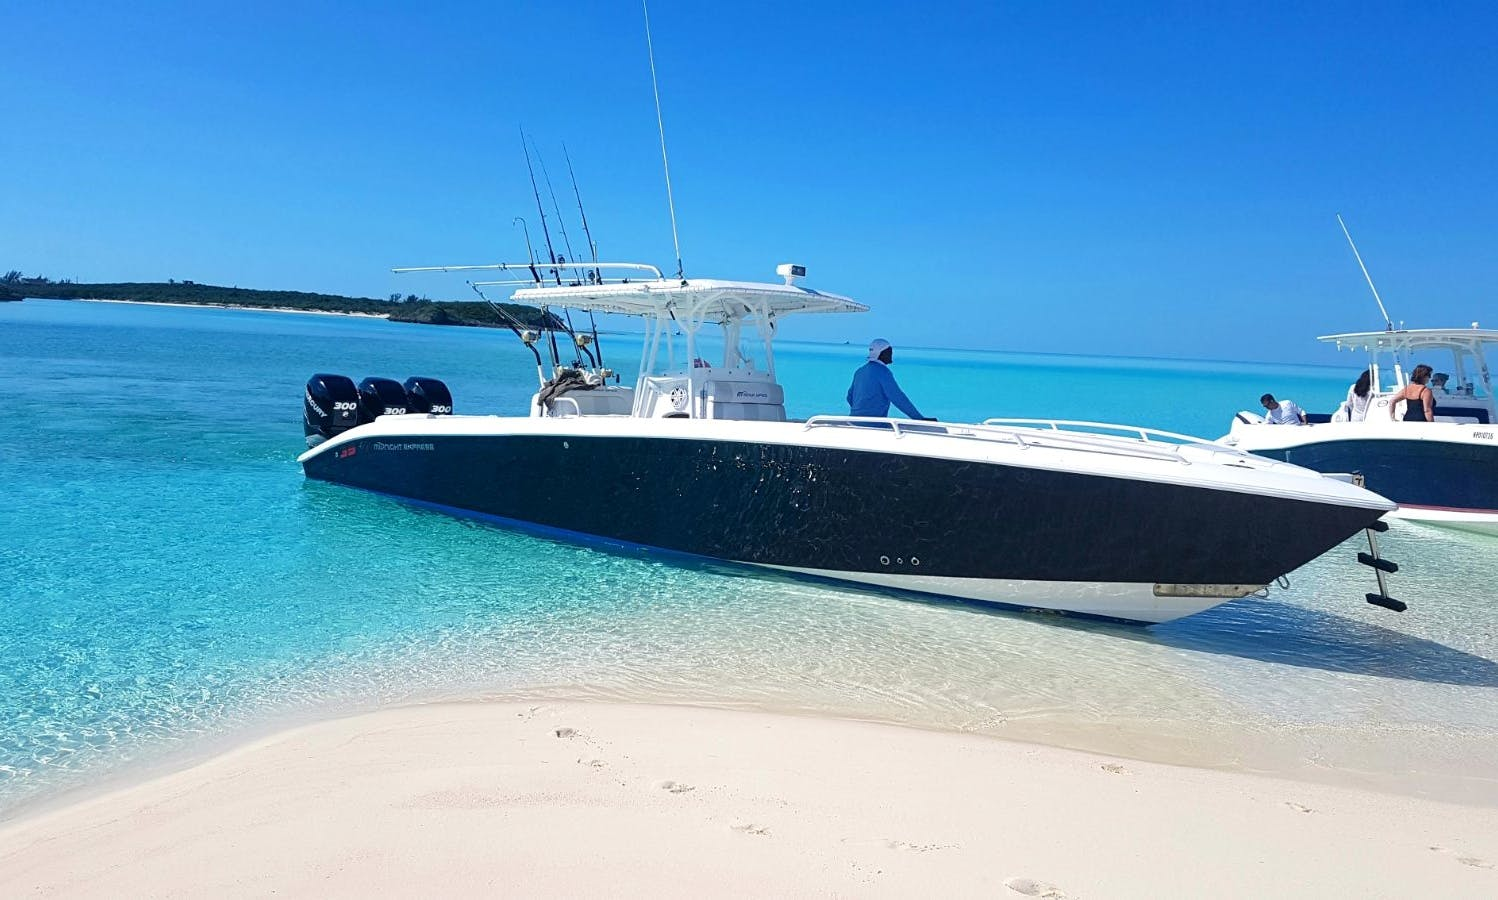 Charter On 39' Midnight Express Powerboat In Nassau, The Bahamas